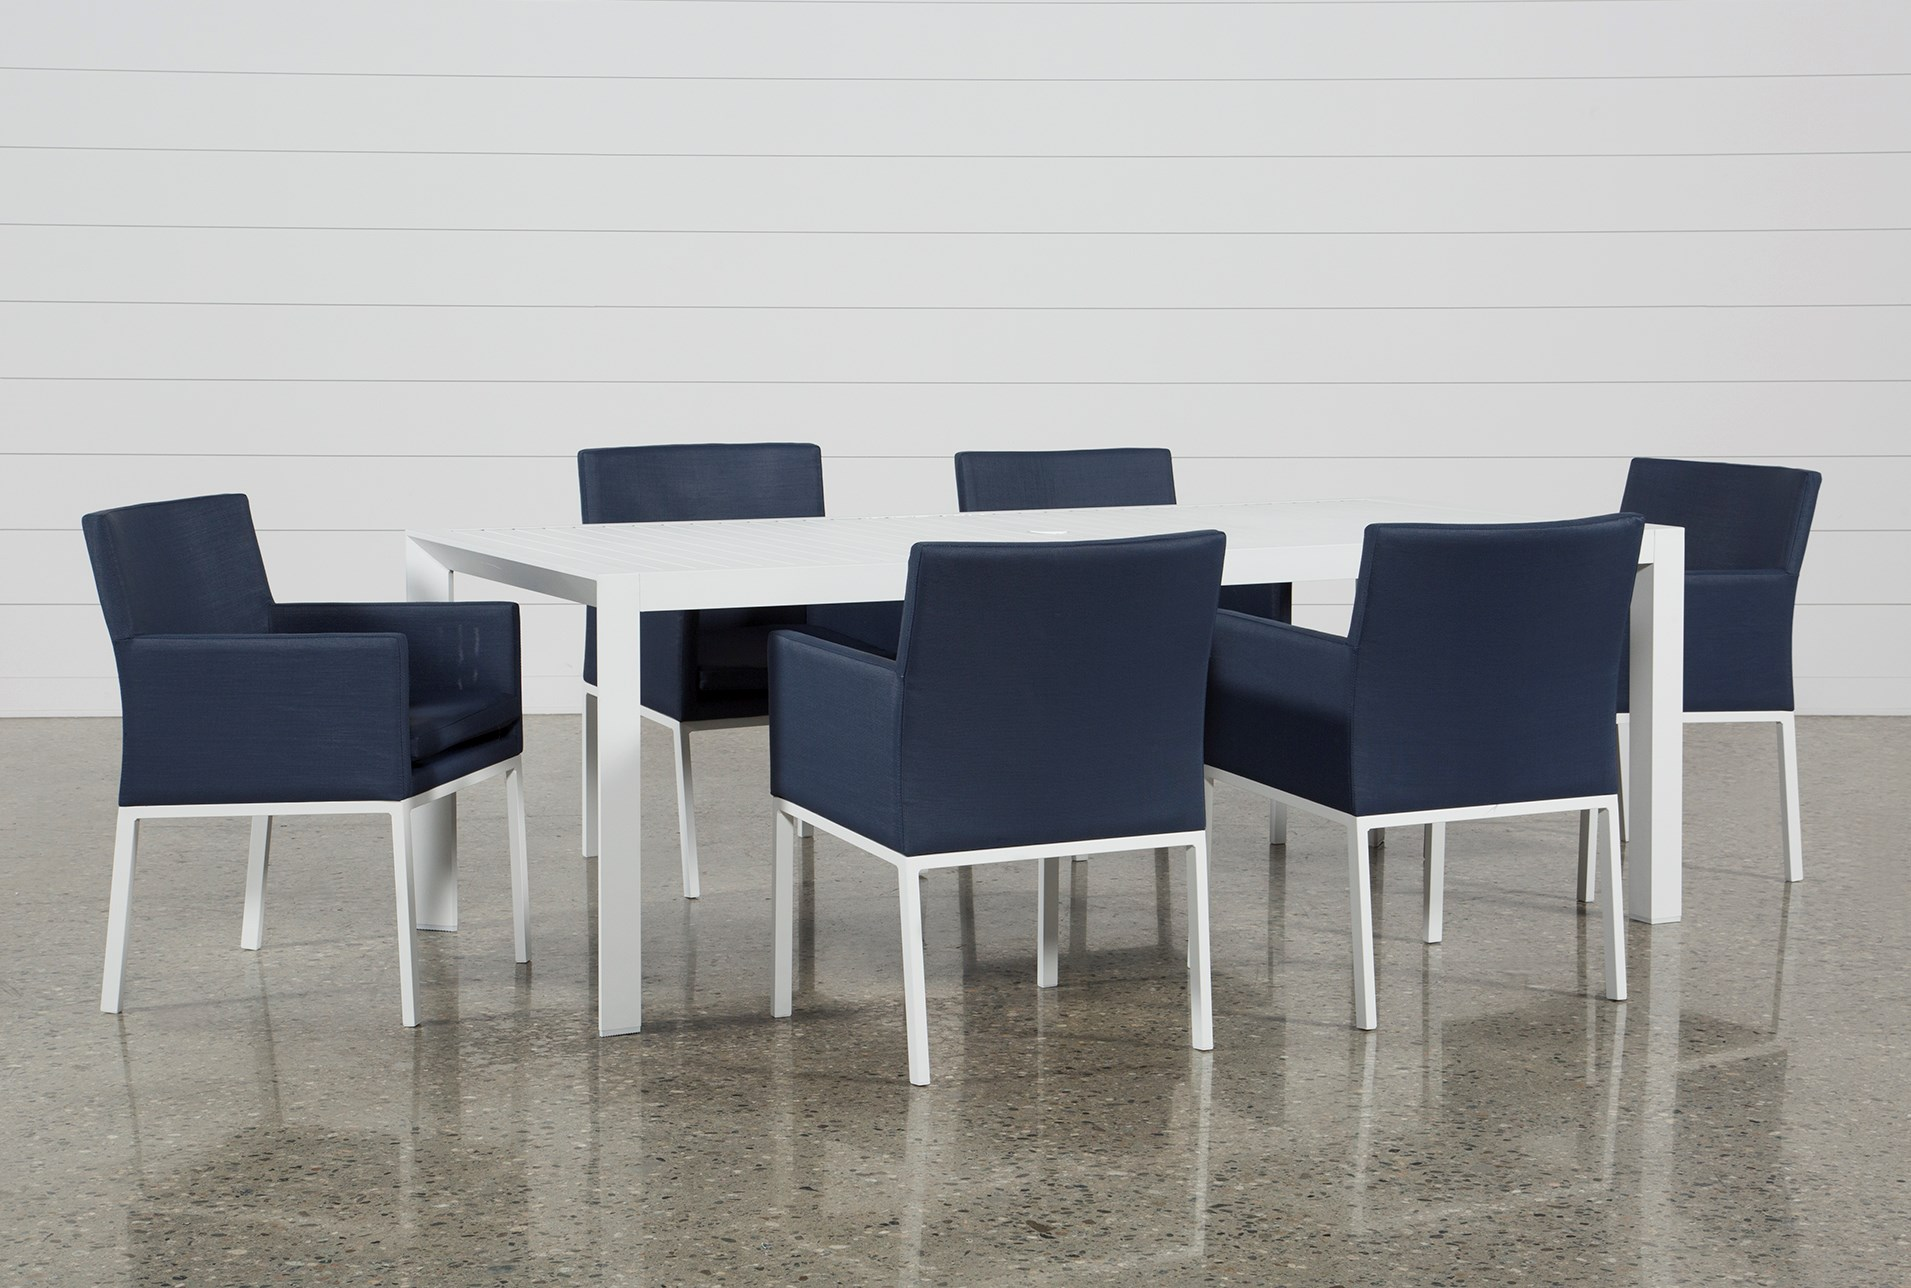 Outdoor Biscayne II Dining Table With 6 Upholstered Chairs Qty 1 Has Been Successfully Added To Your Cart